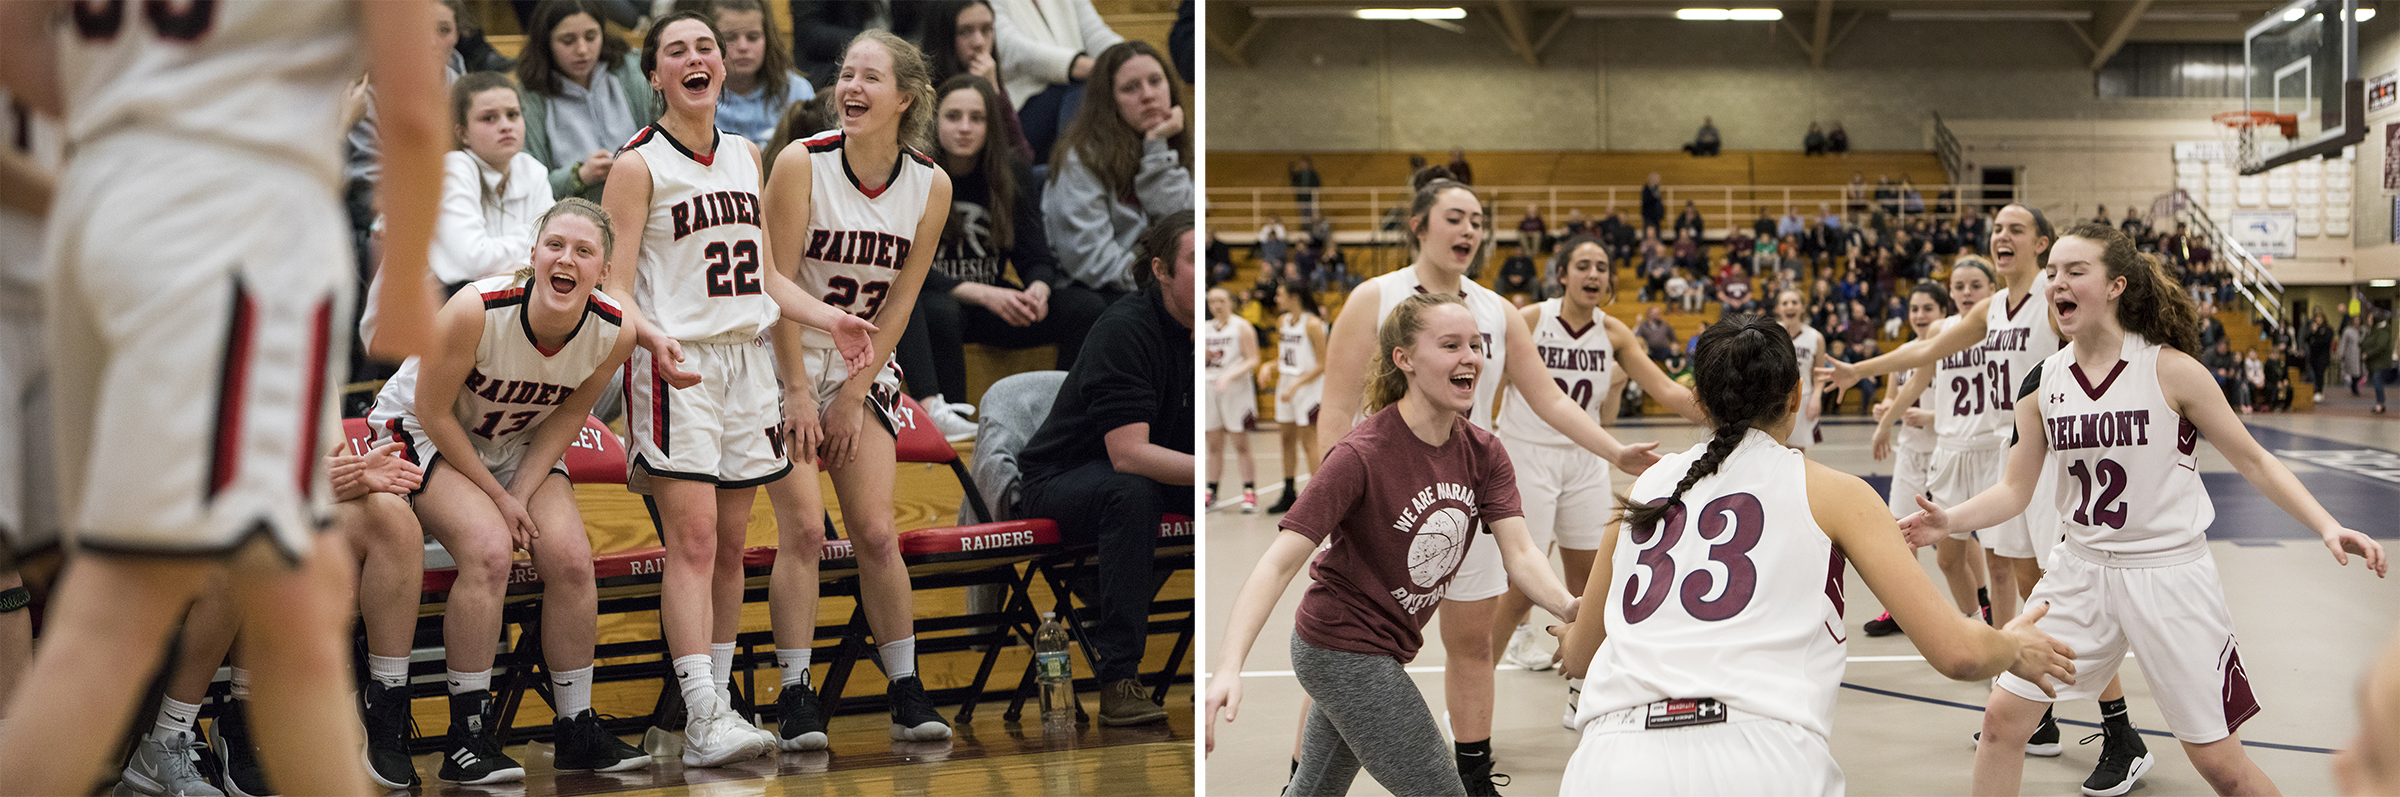 (Left) (L-R) Wellesley senior Isabella Kogon and juniors Anna Glashow and Caroline Harding react to Wellesley stealing the ball from Walpole during the game in Wellesley on Feb. 25, 2019. (Right) Belmont players cheer for senior Megan Tan during the starting lineup announcement before the game against Reading in Belmont on Feb. 8, 2019.